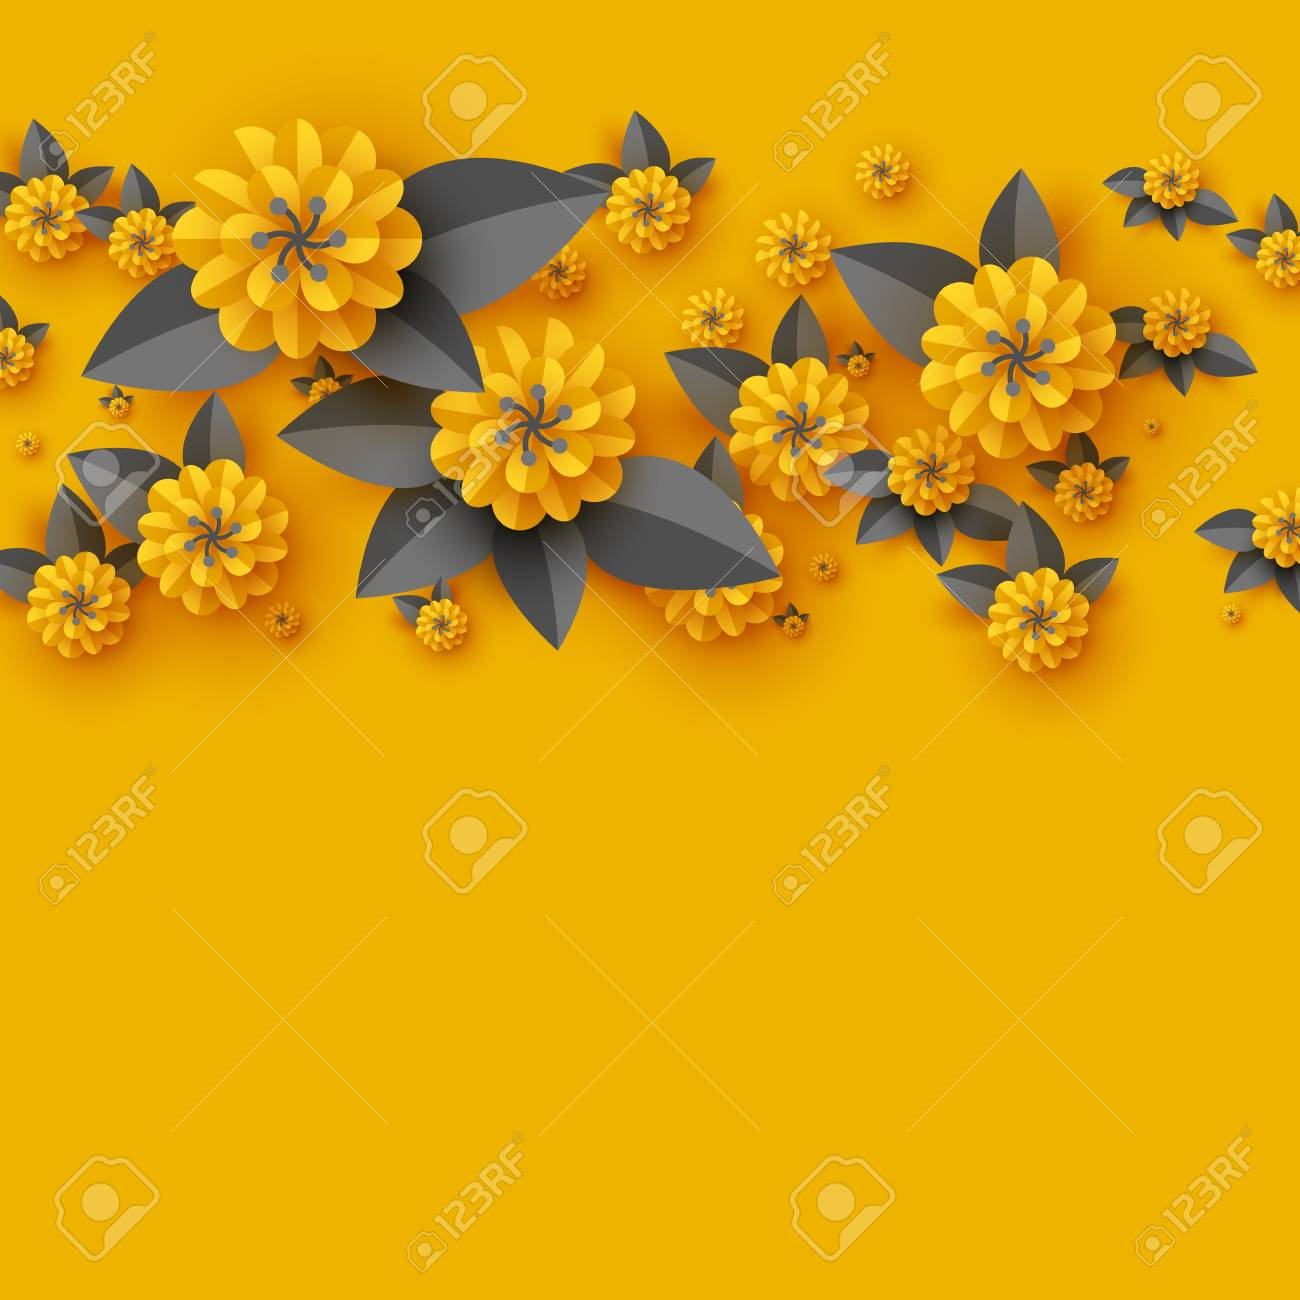 Paper Cut Decorative Flowers Template For Greeting Card Holiday